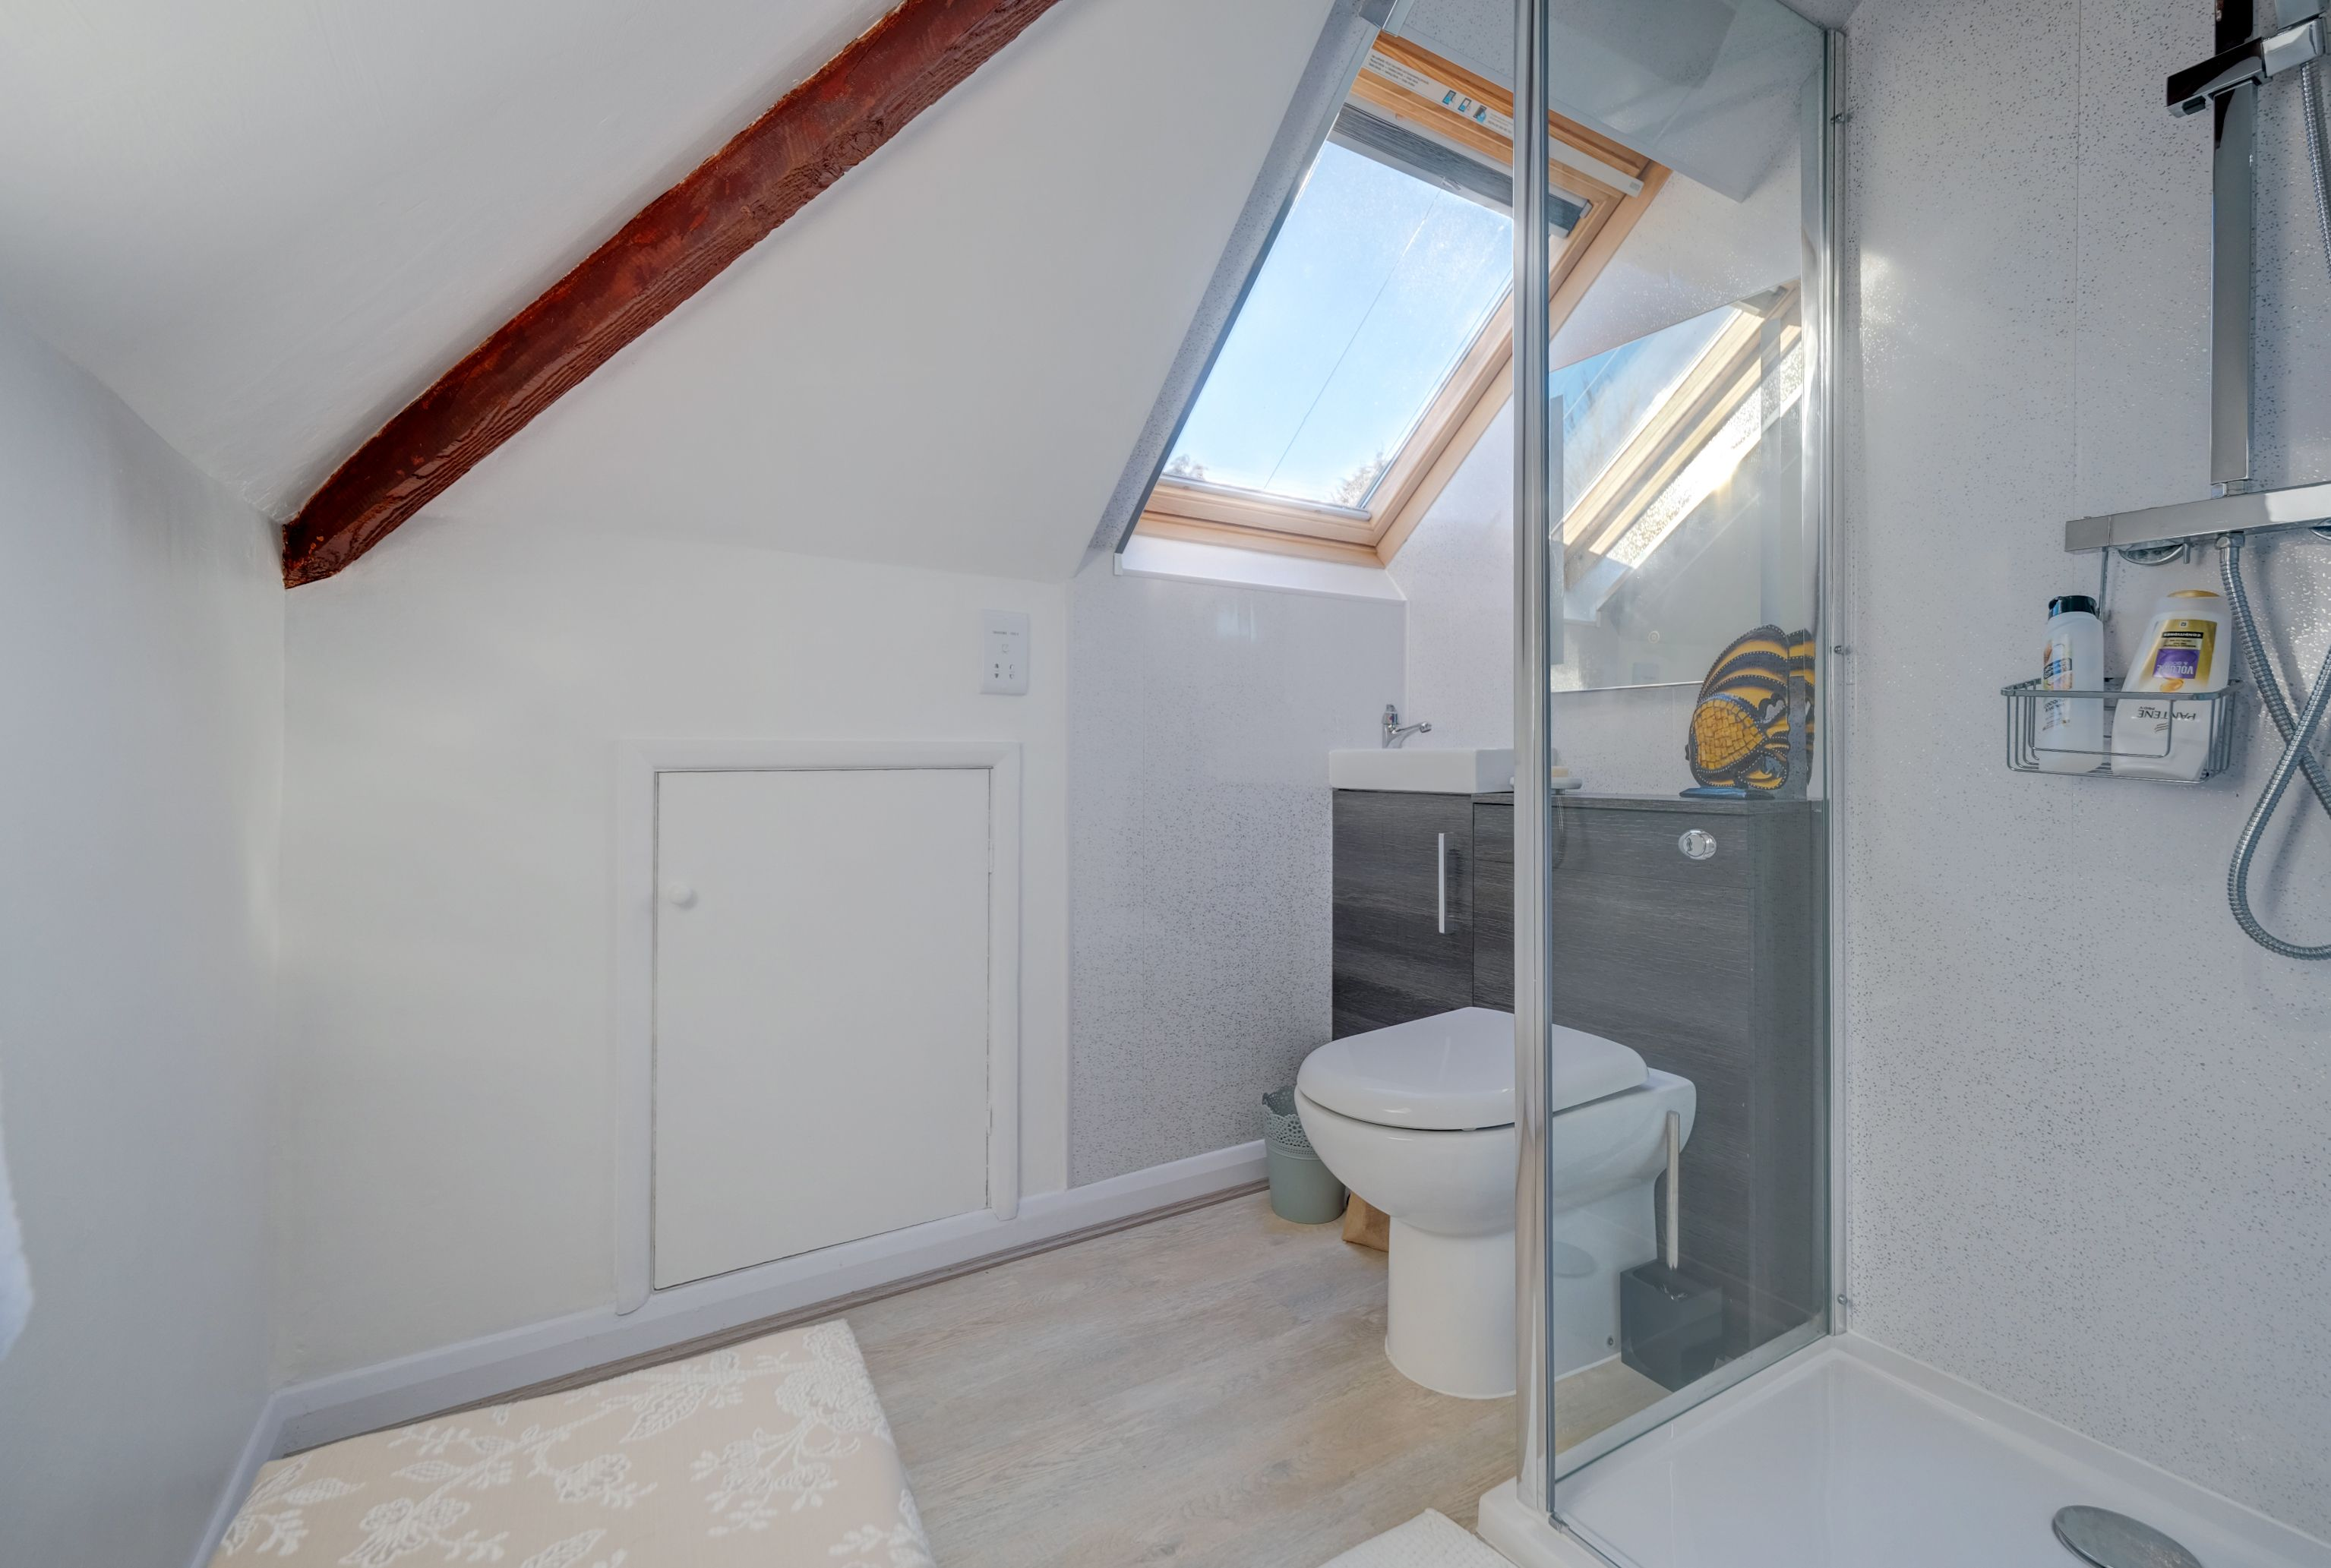 4 bed detached house for sale in Stanley Road, Hinckley, LE10, Hinckley  - Property Image 20